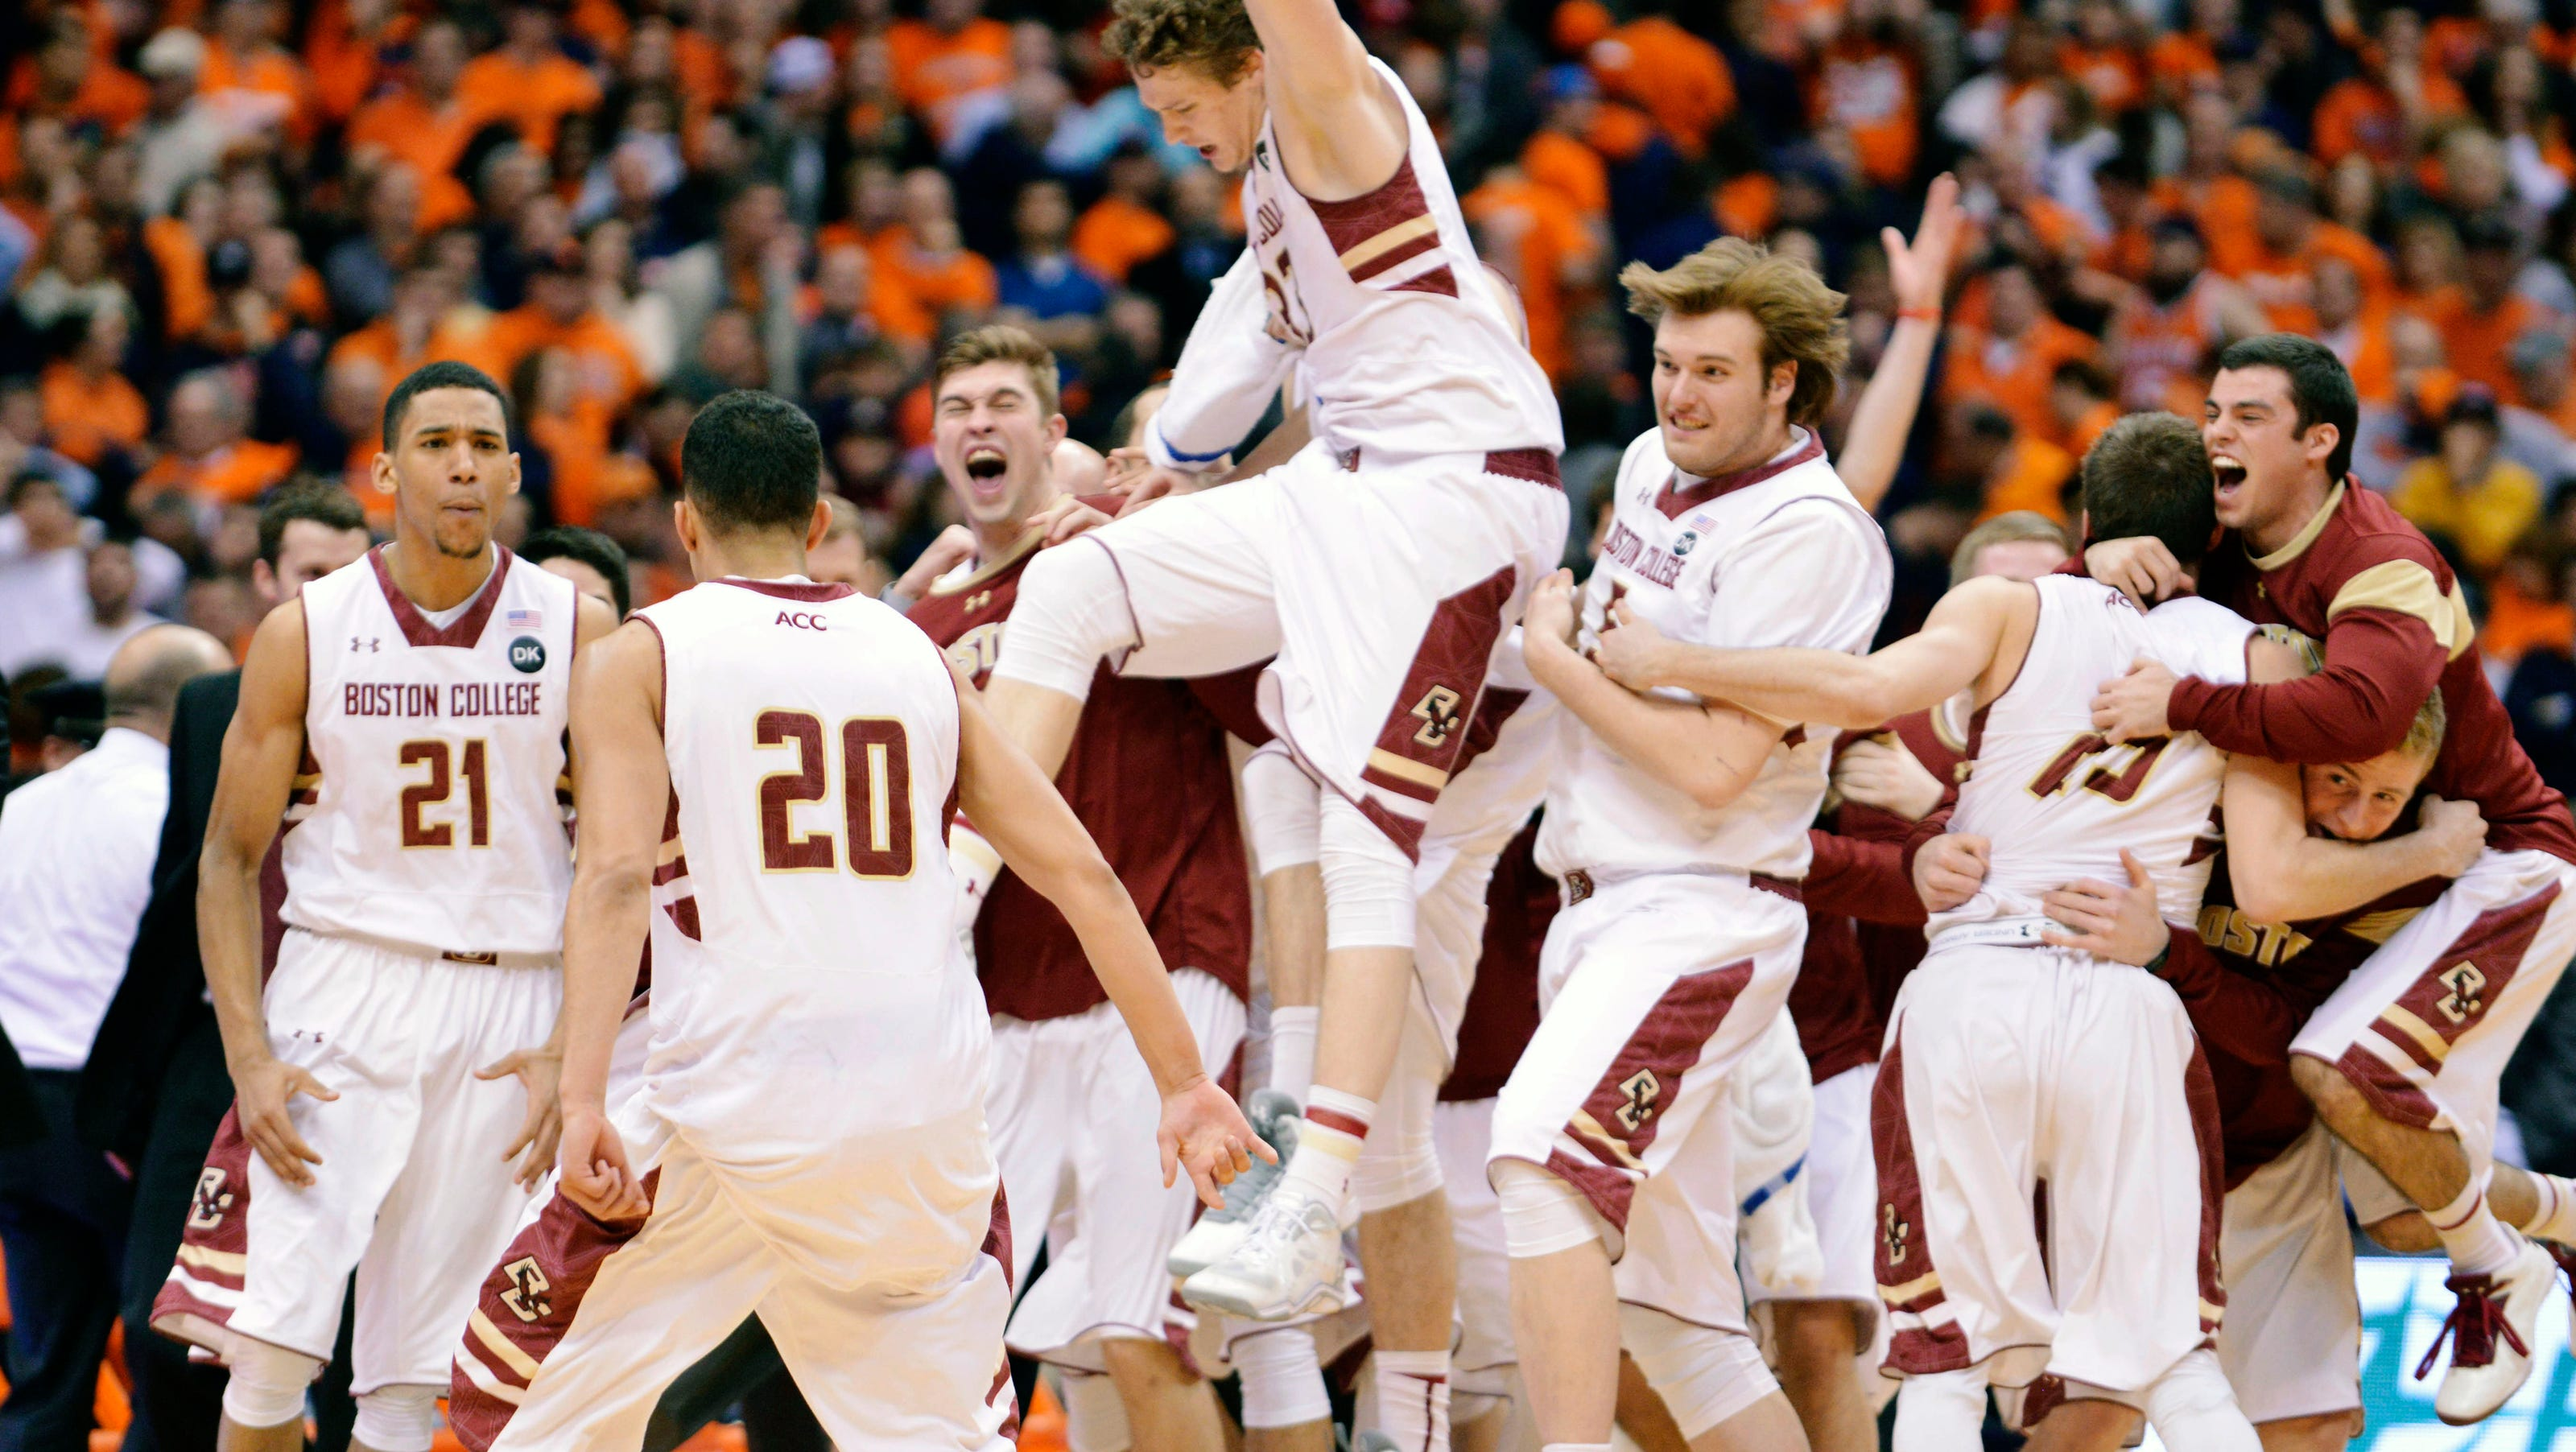 Boston College Stuns No 1 Syracuse